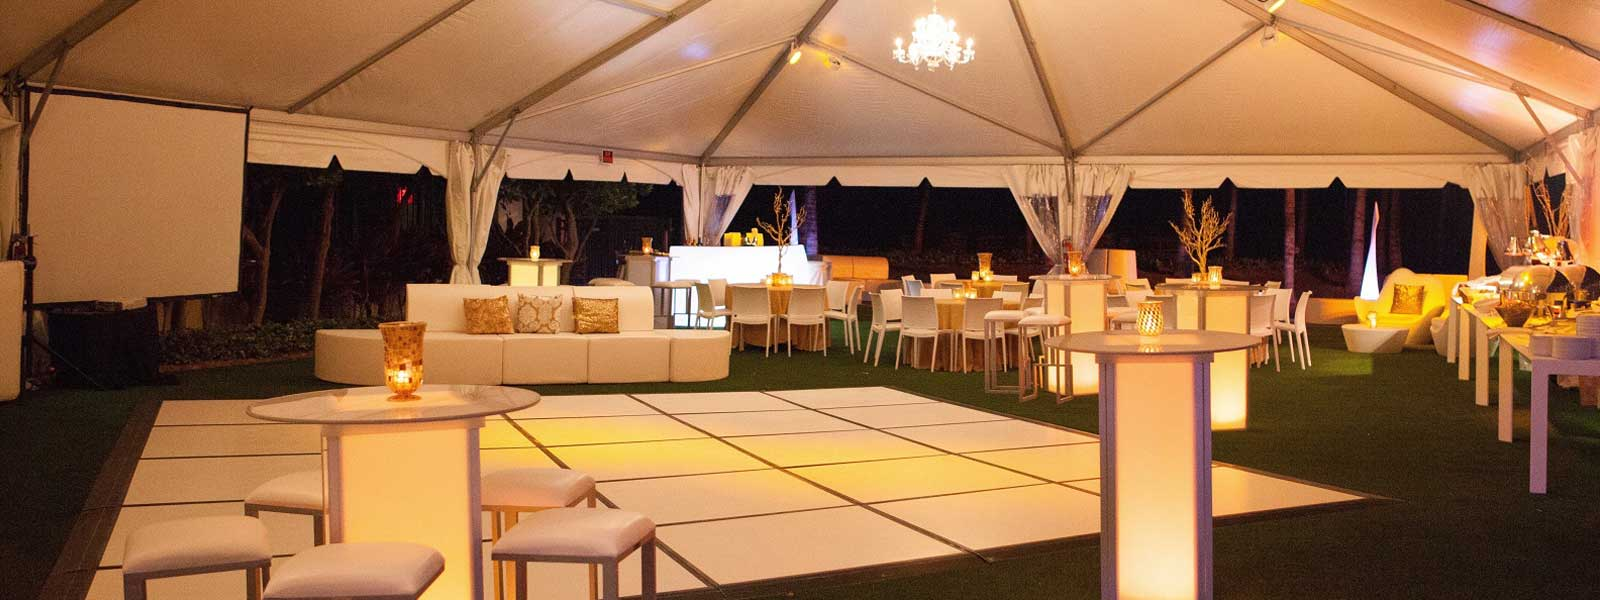 Event rental agency in Miami